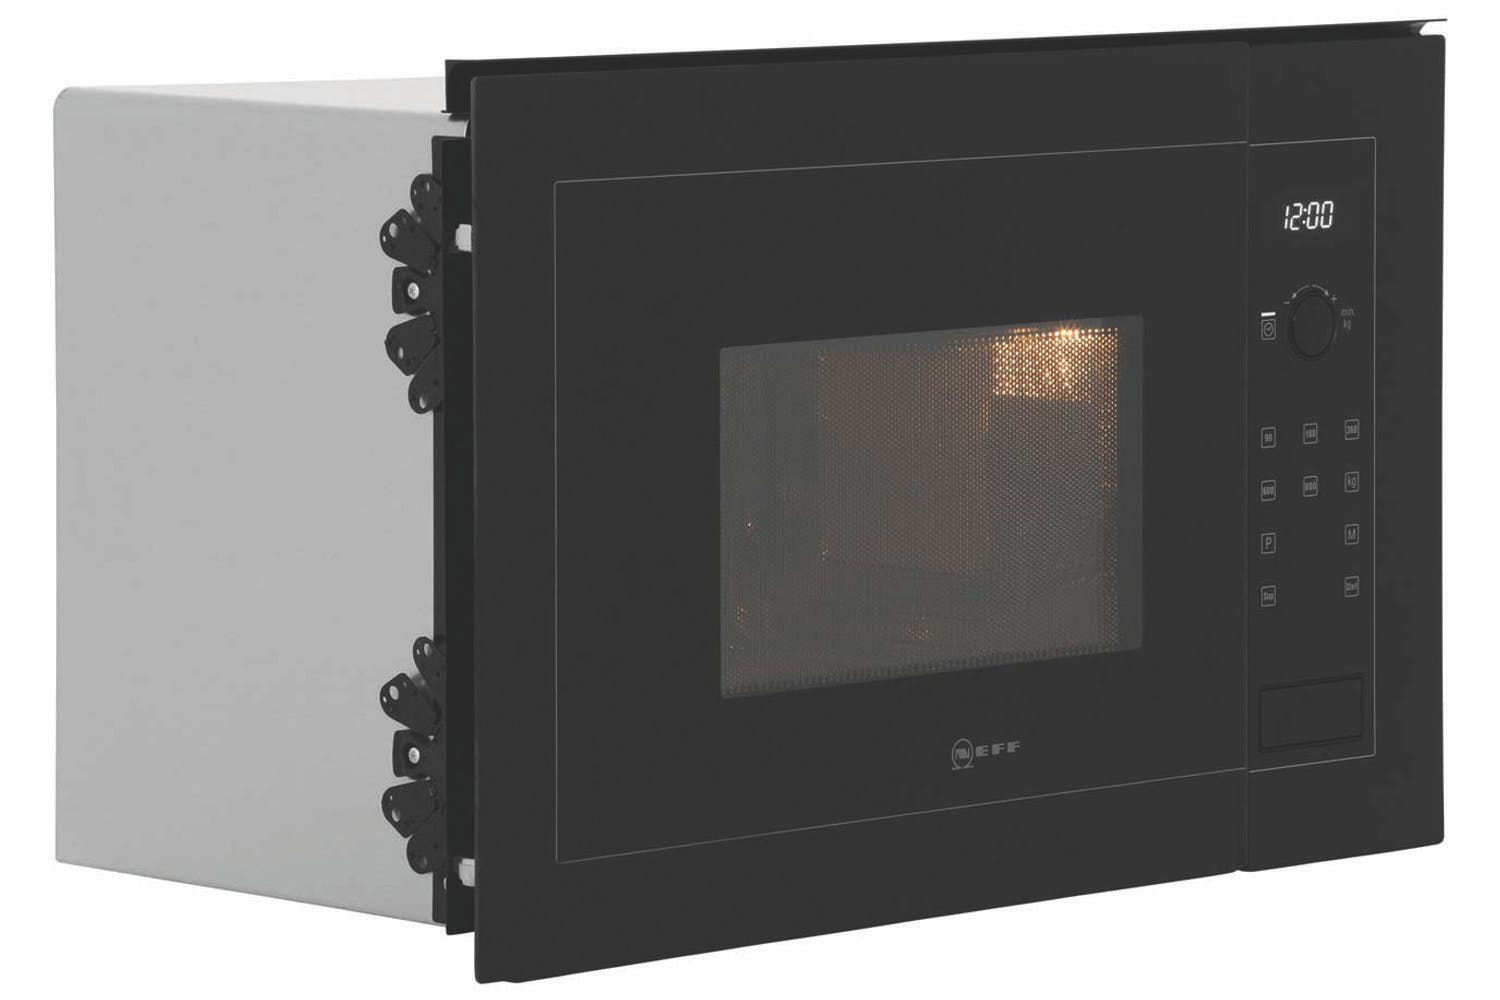 Neff 20L 800W Built In Microwave |Black